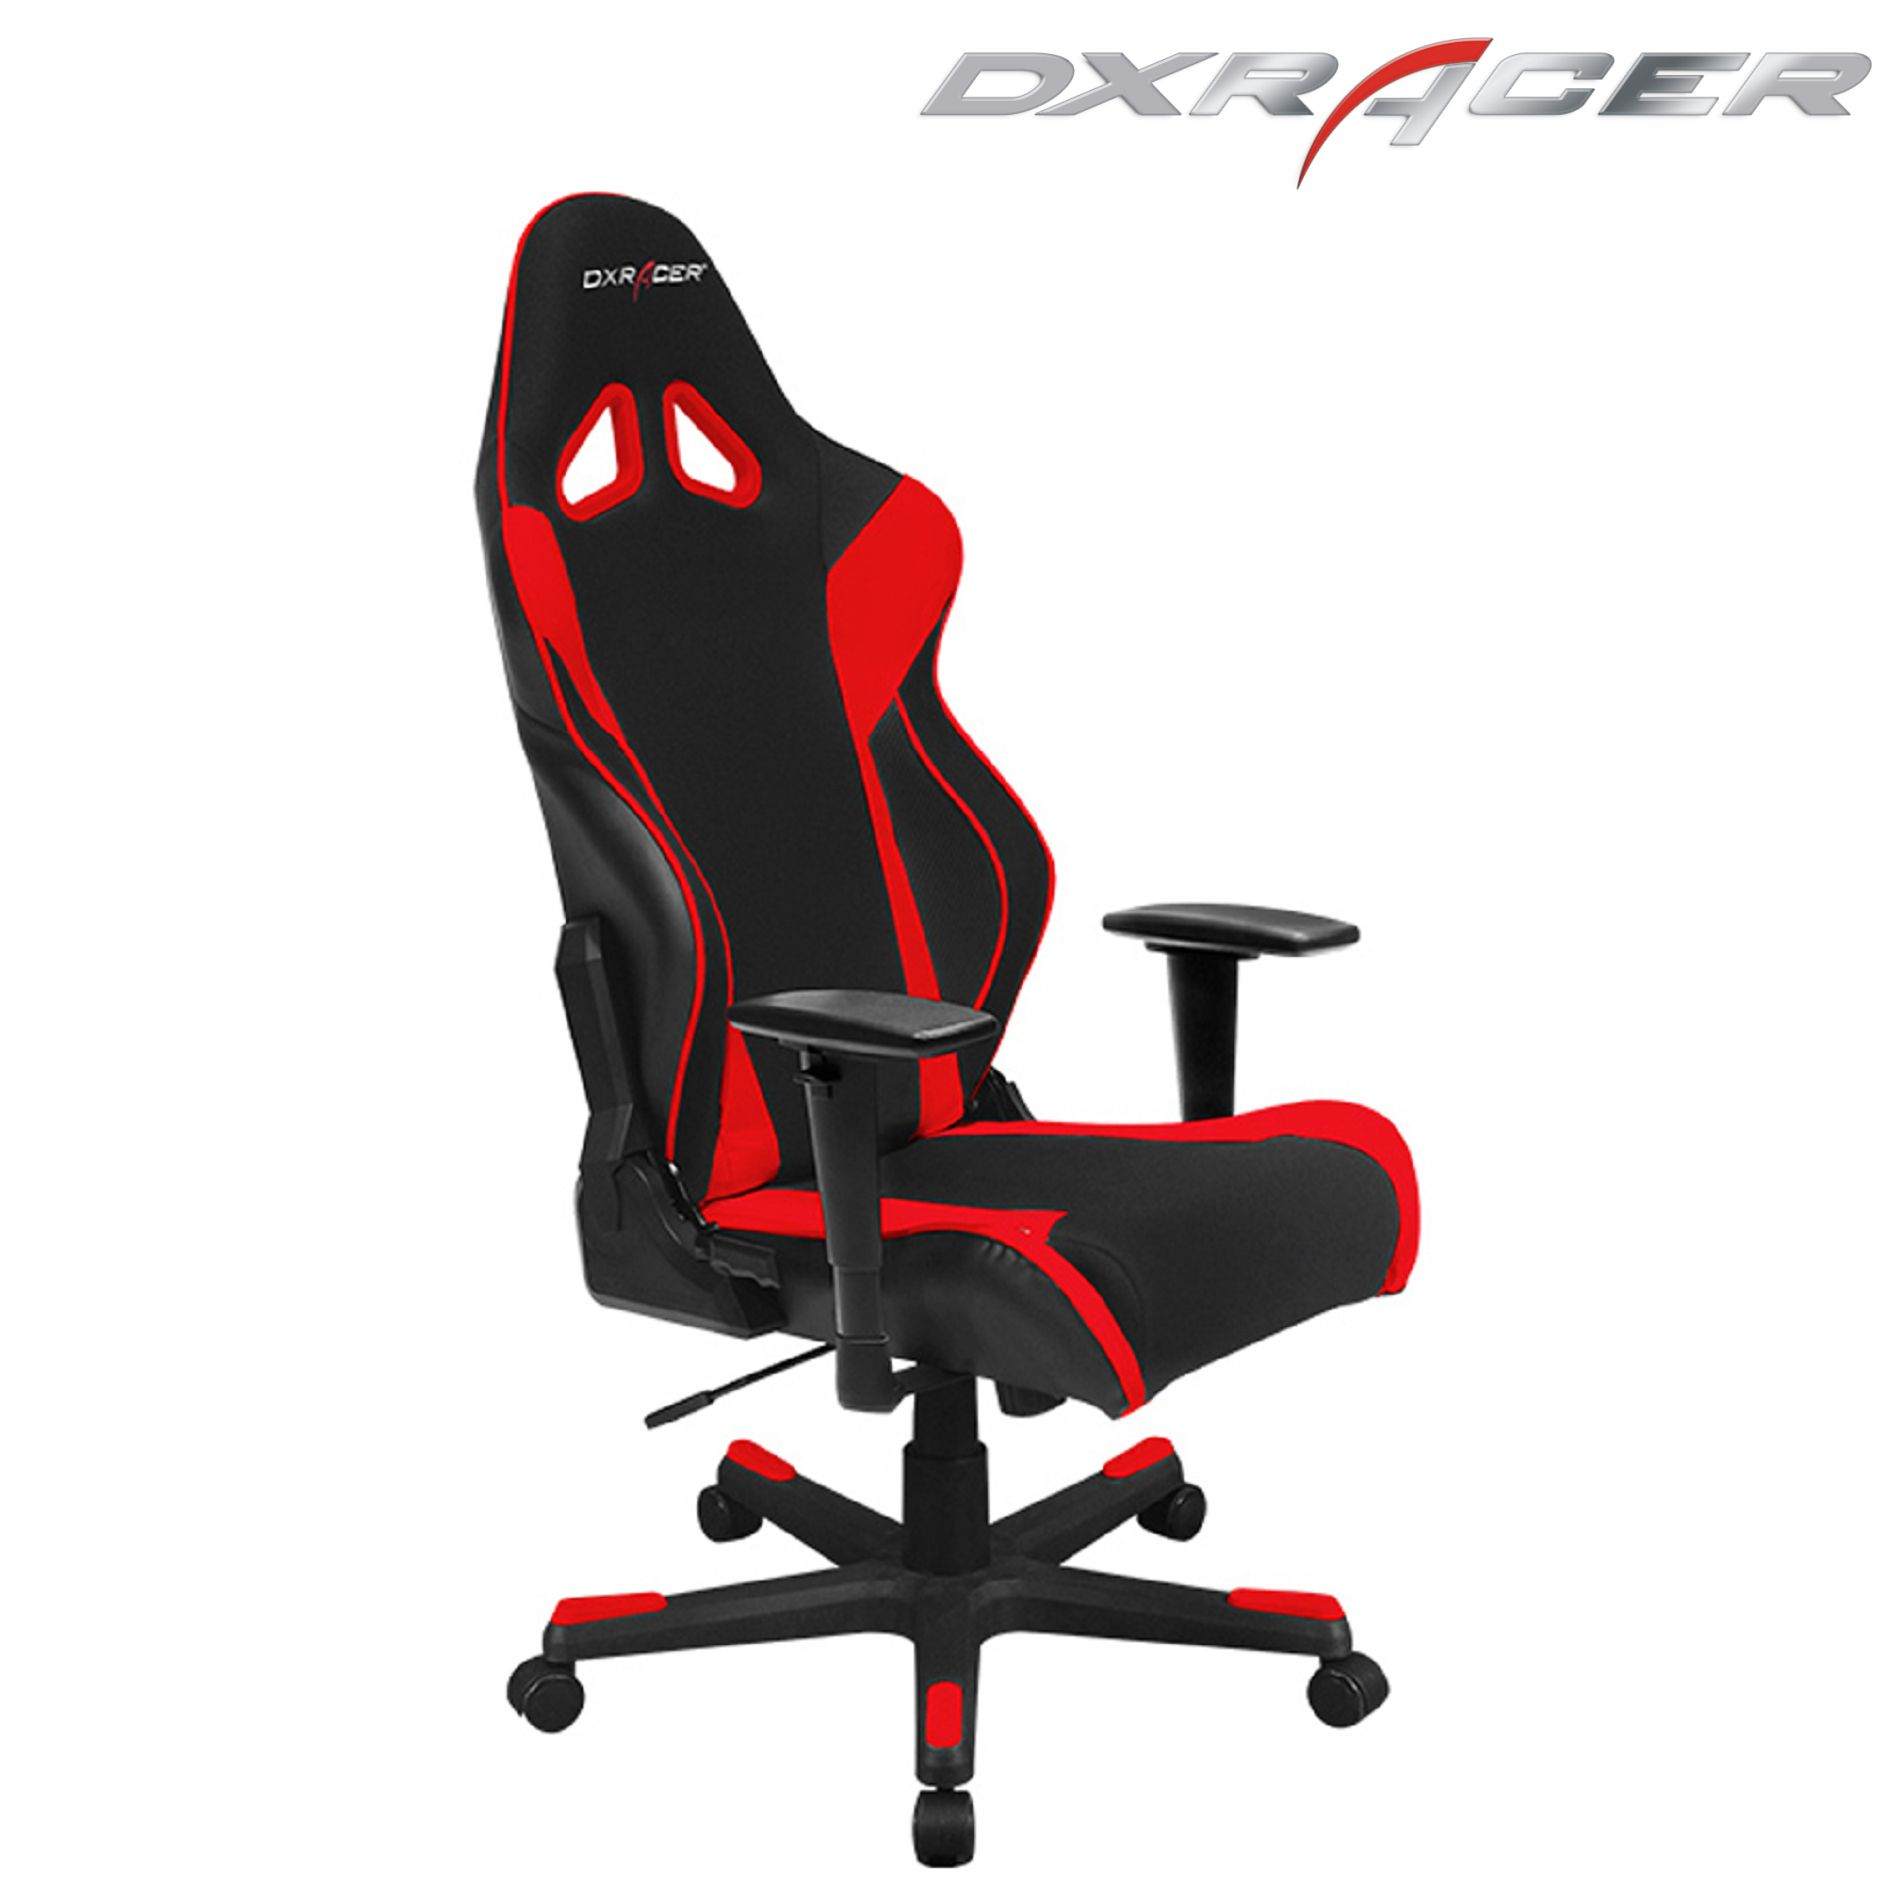 Dxracer Rw106nr Computer Chairdota2 Dota Fnatic Eg Navi Dendi Racing Series Oh Rv131 No Black Orange Puppey Steam Valve